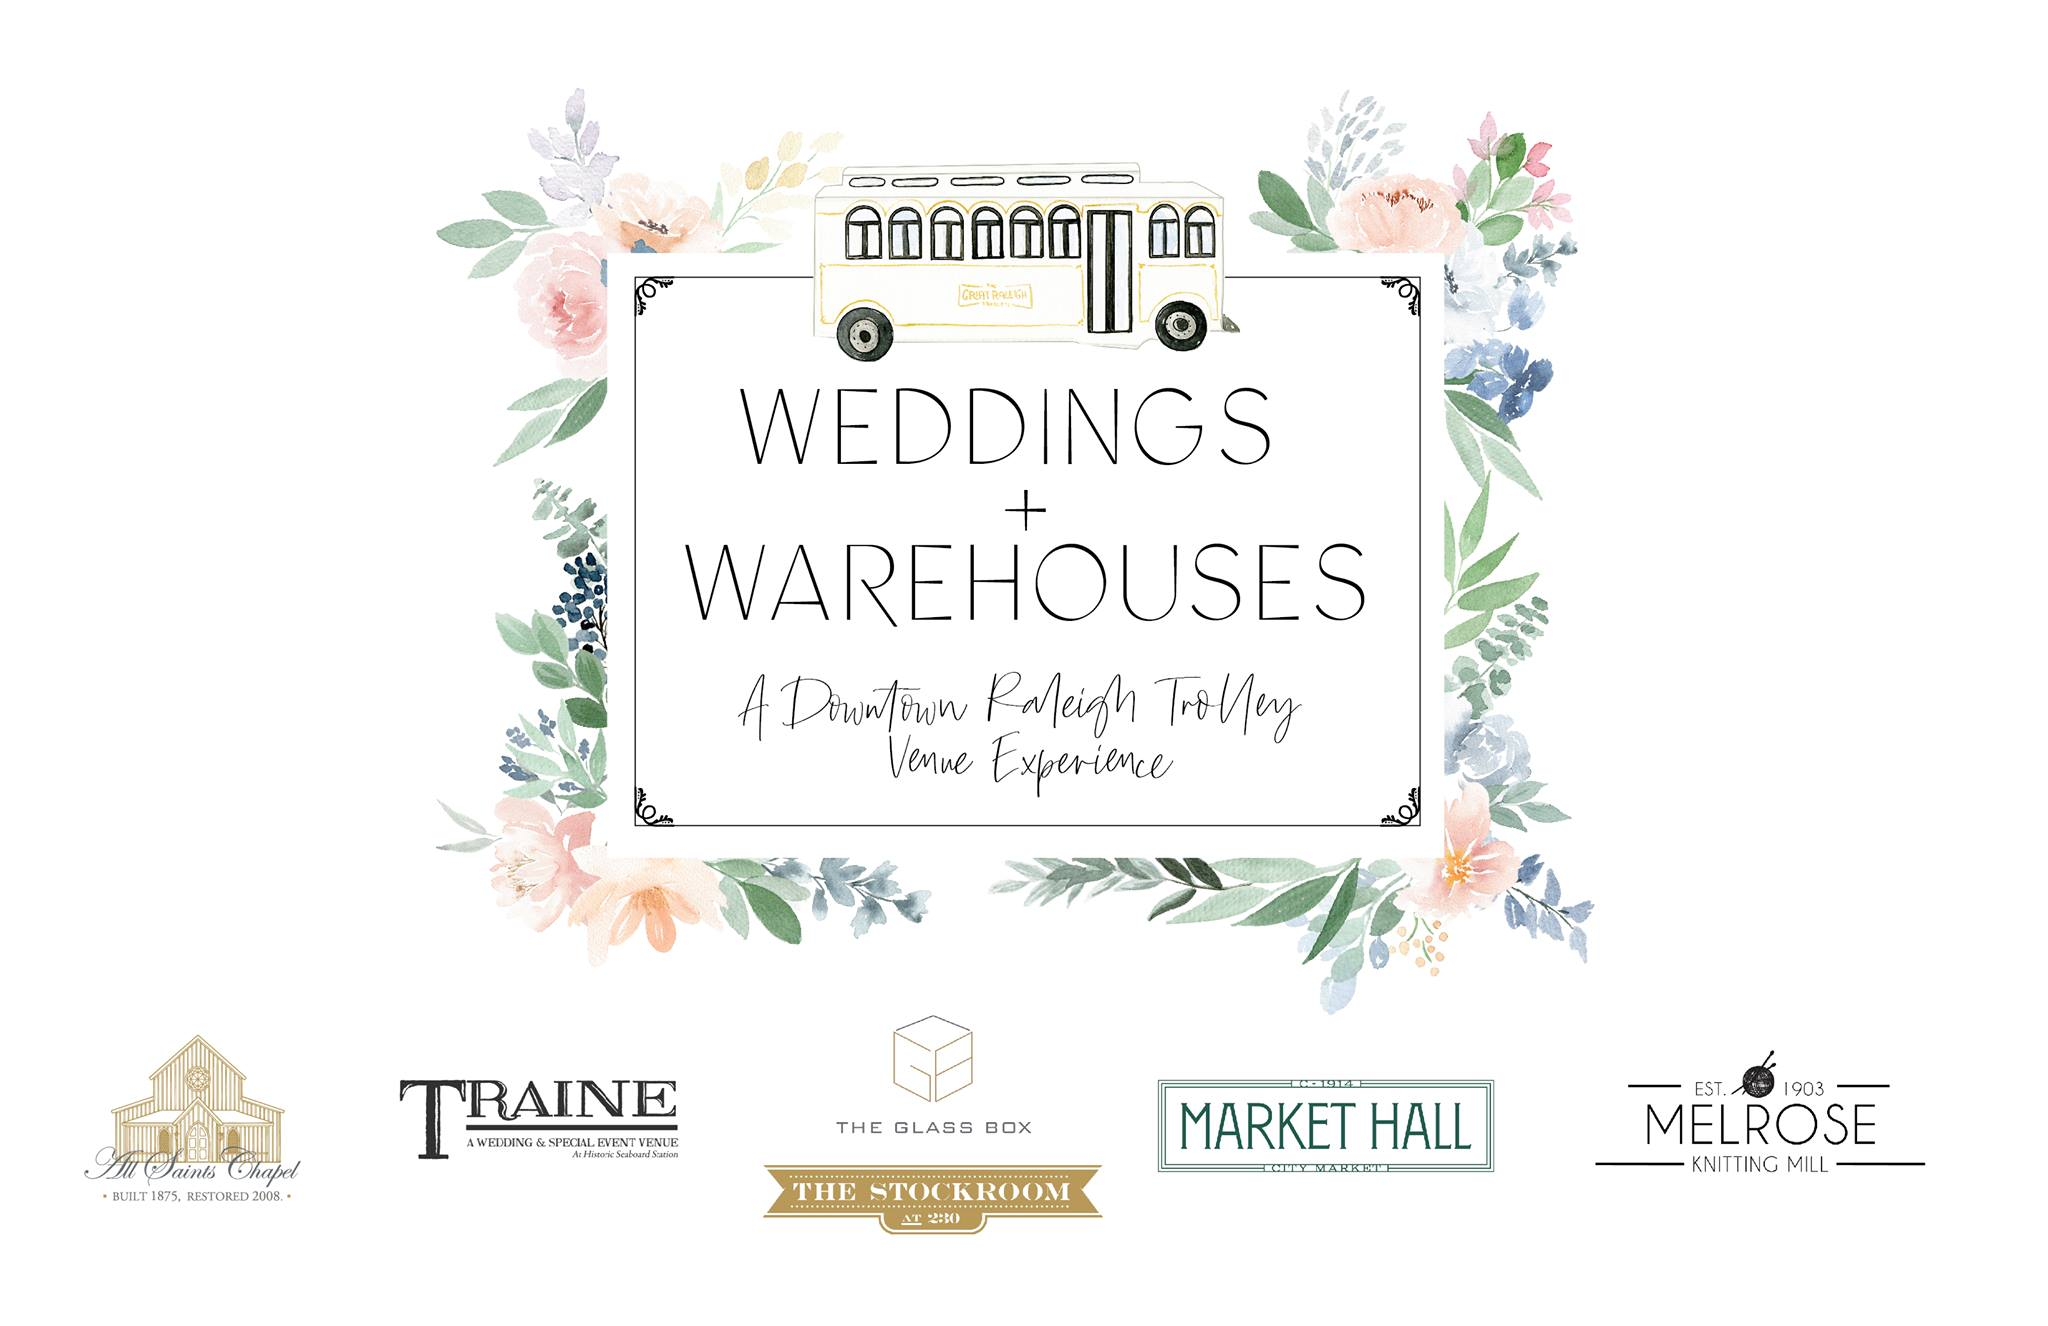 Weddings & Warehouses